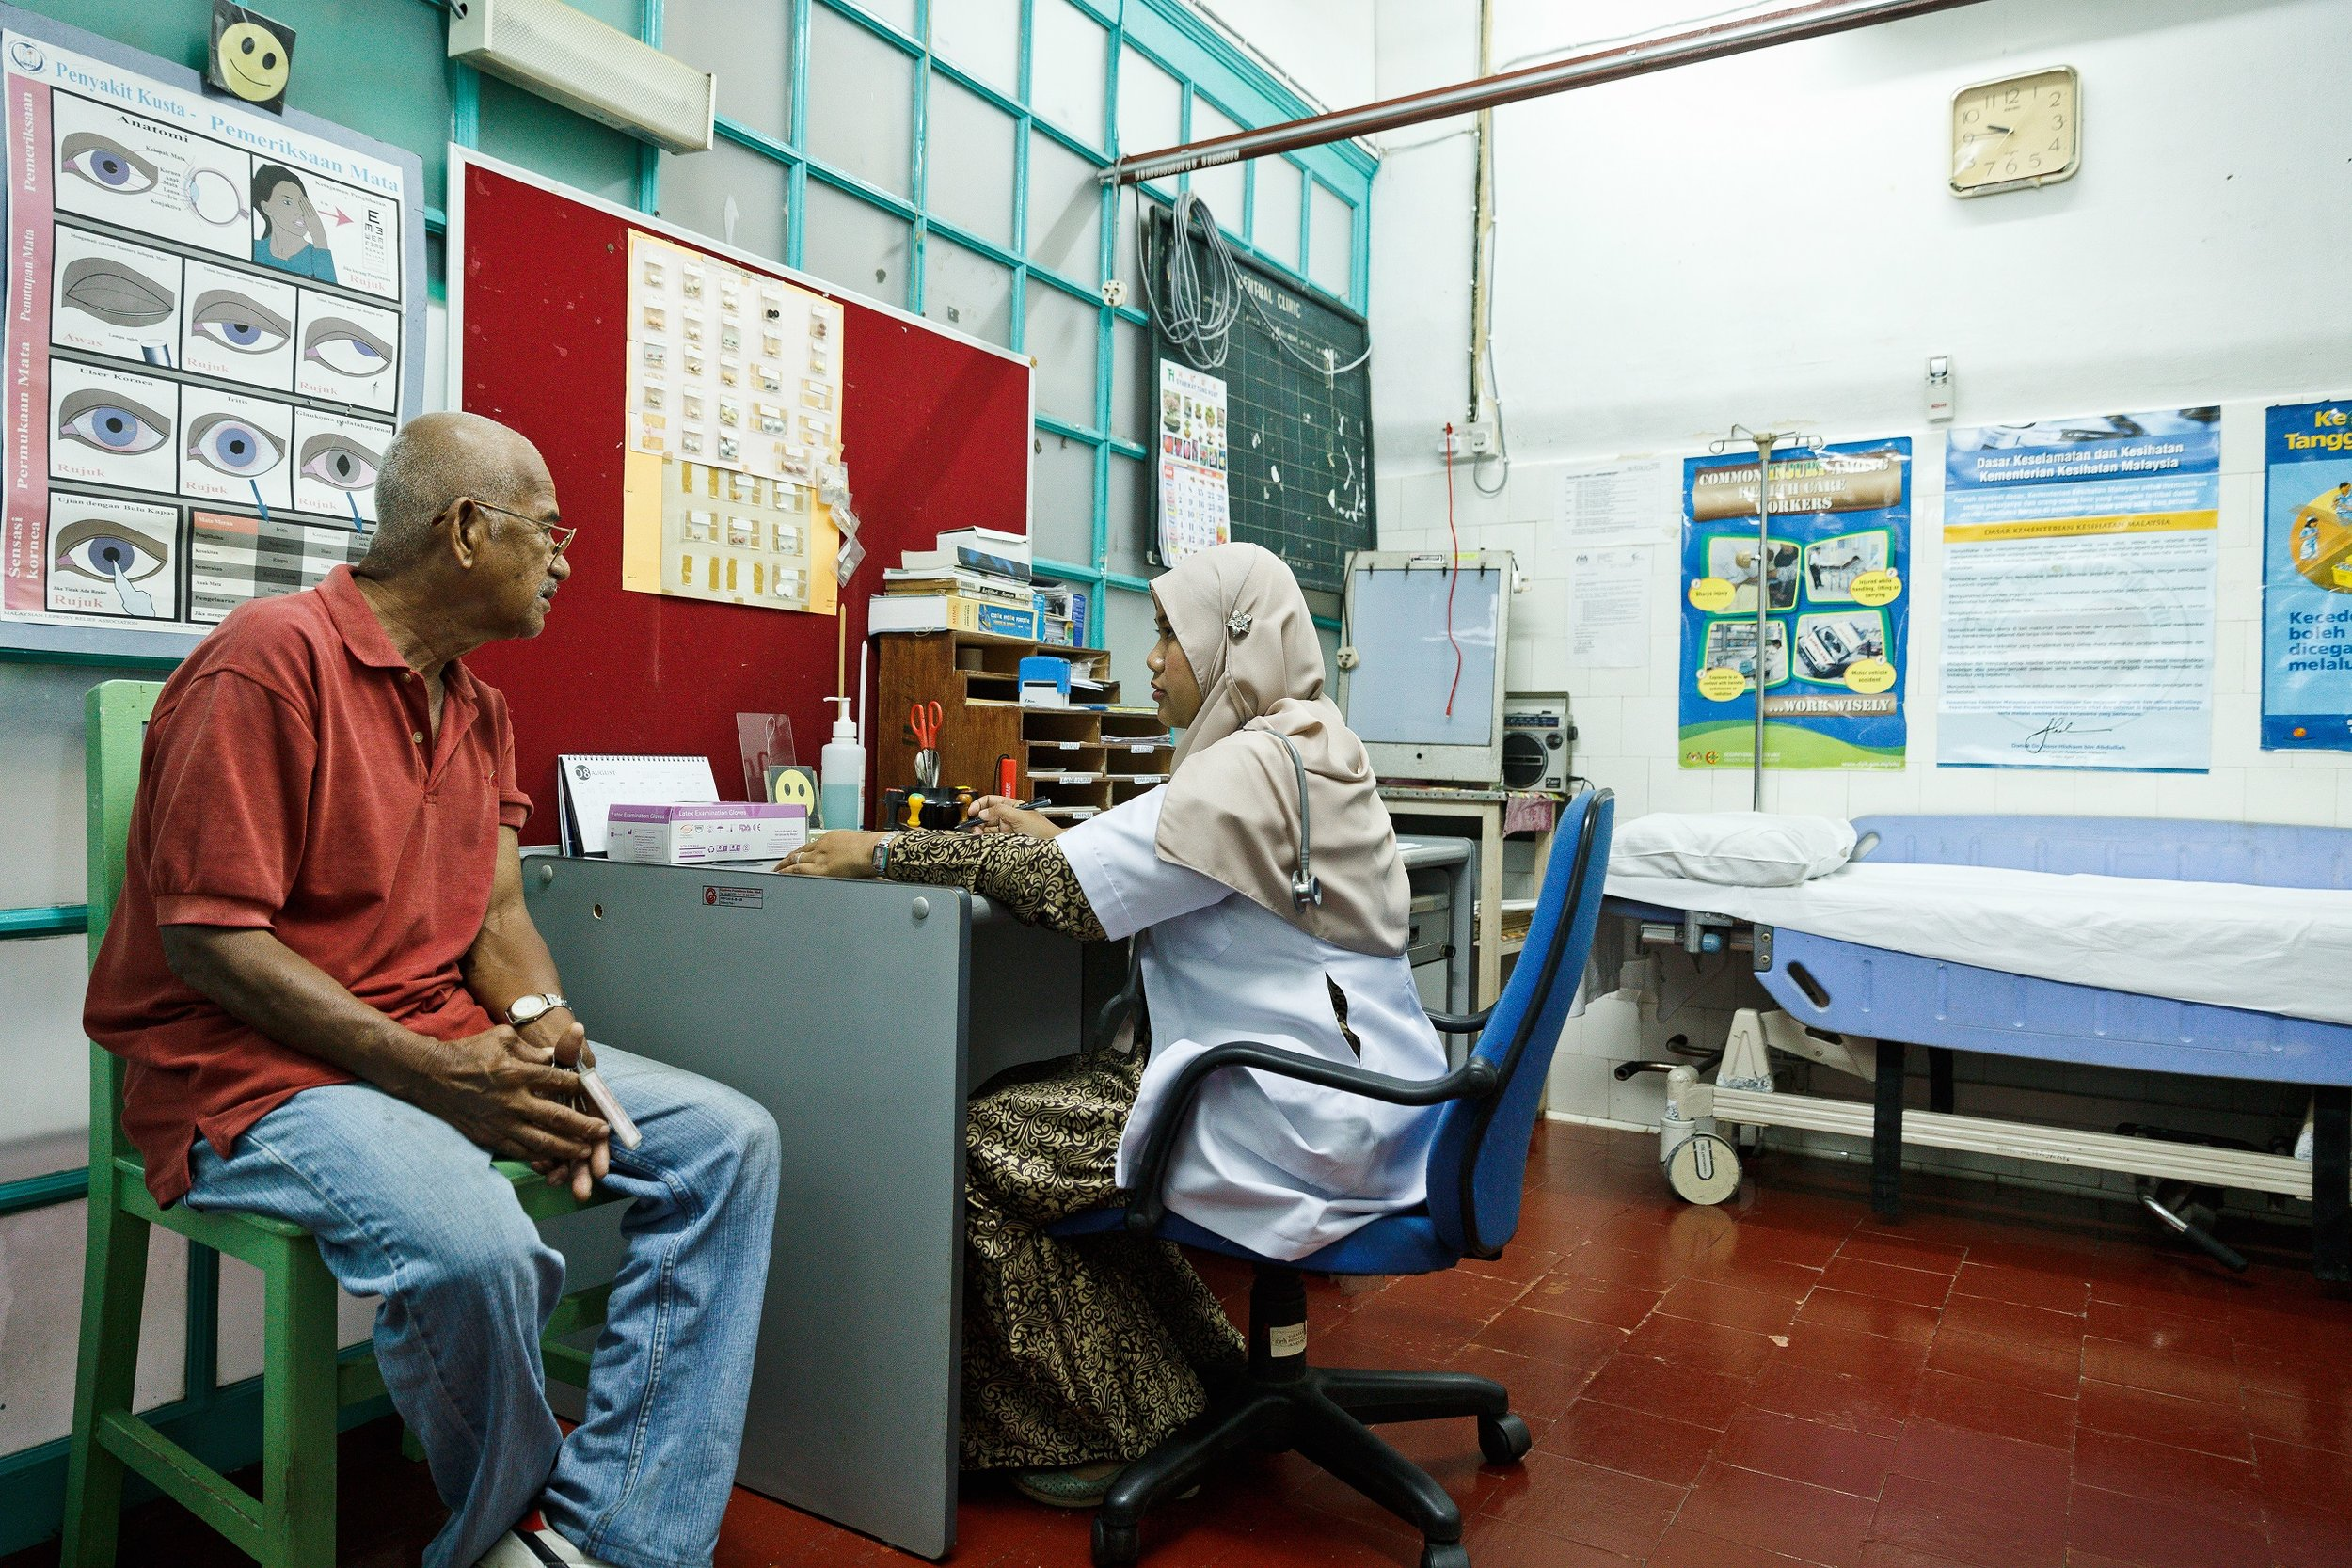 Every Tuesday and Thursday, there will be a doctor at the Central Clinic to give consultation and treatment to the residents. (photo by Mango Loke )